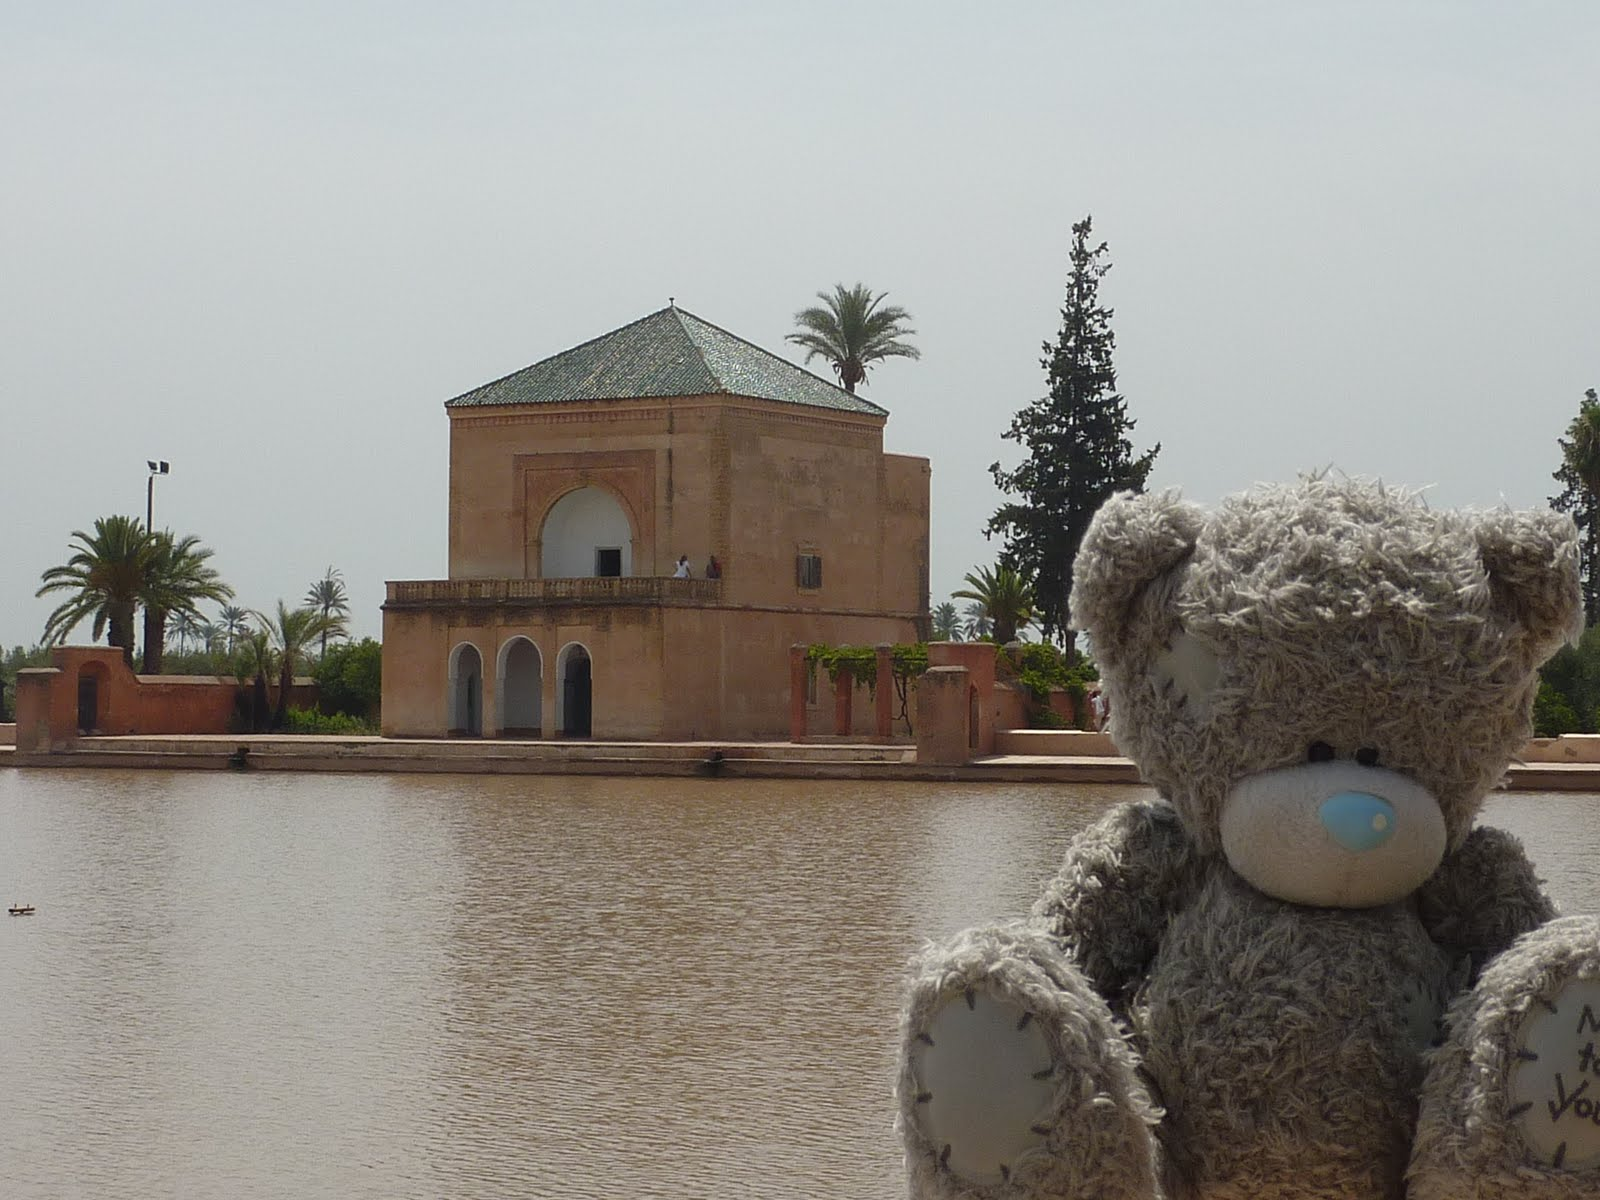 The travels of Tim and Megan: Marrakech, Morocco - Part 2